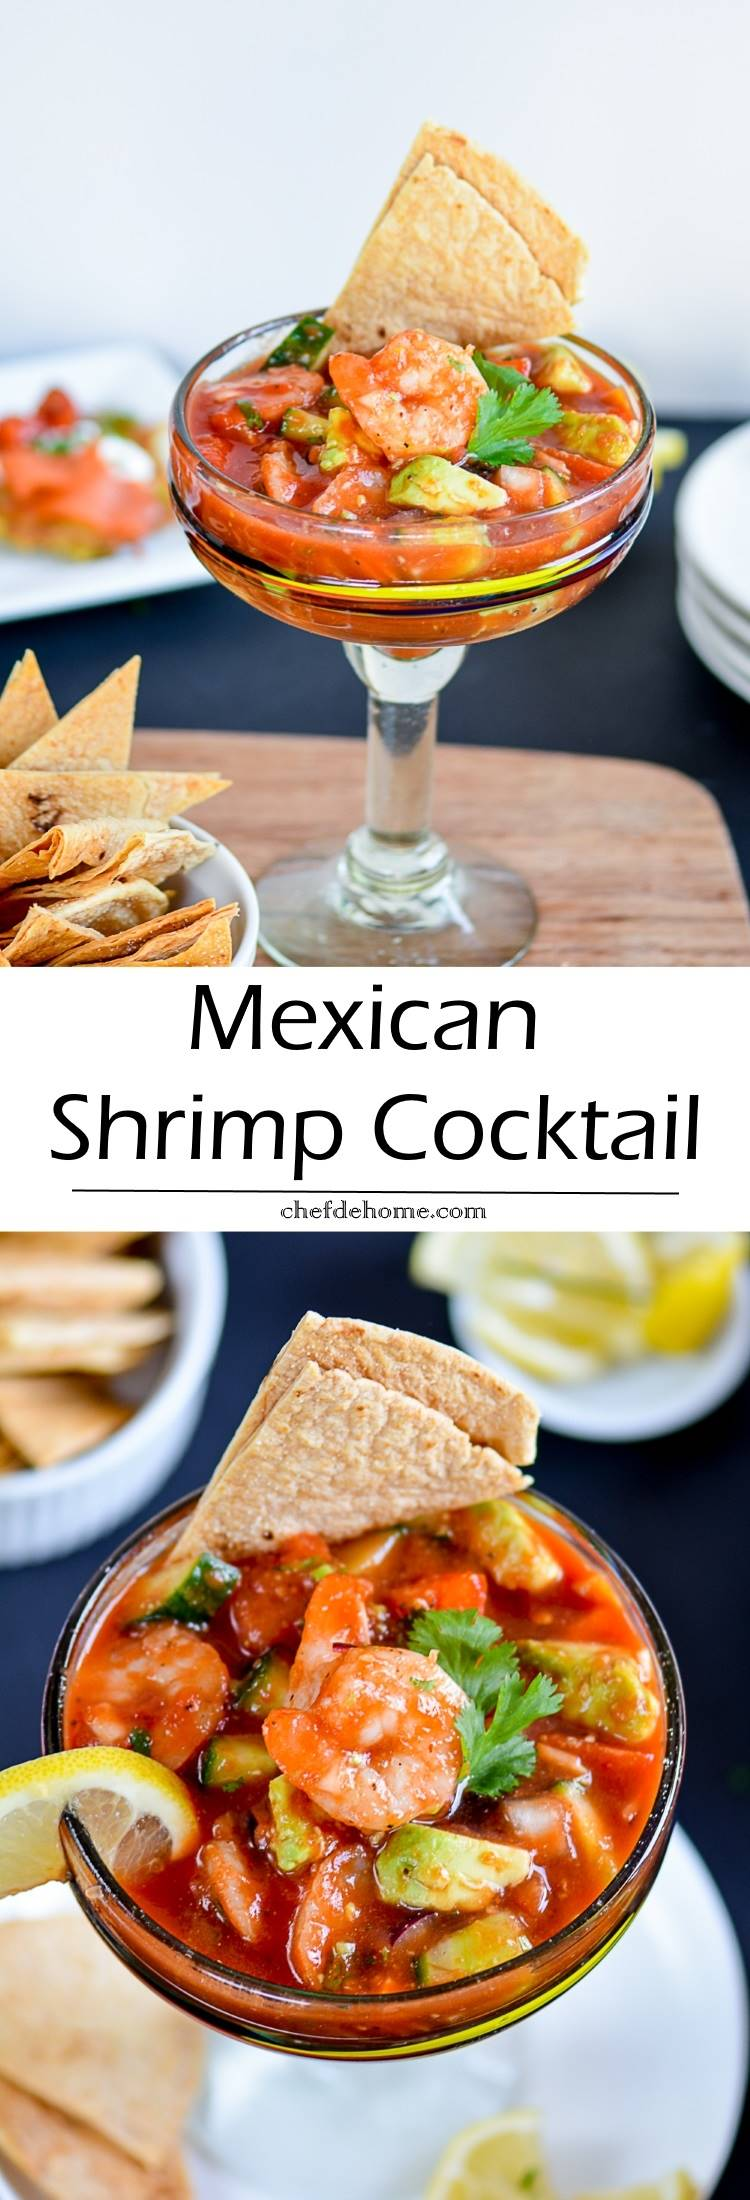 Easy Zesty Mexican Shrimp Cocktail Perfect for Holiday Entertaining | chefdehome.com